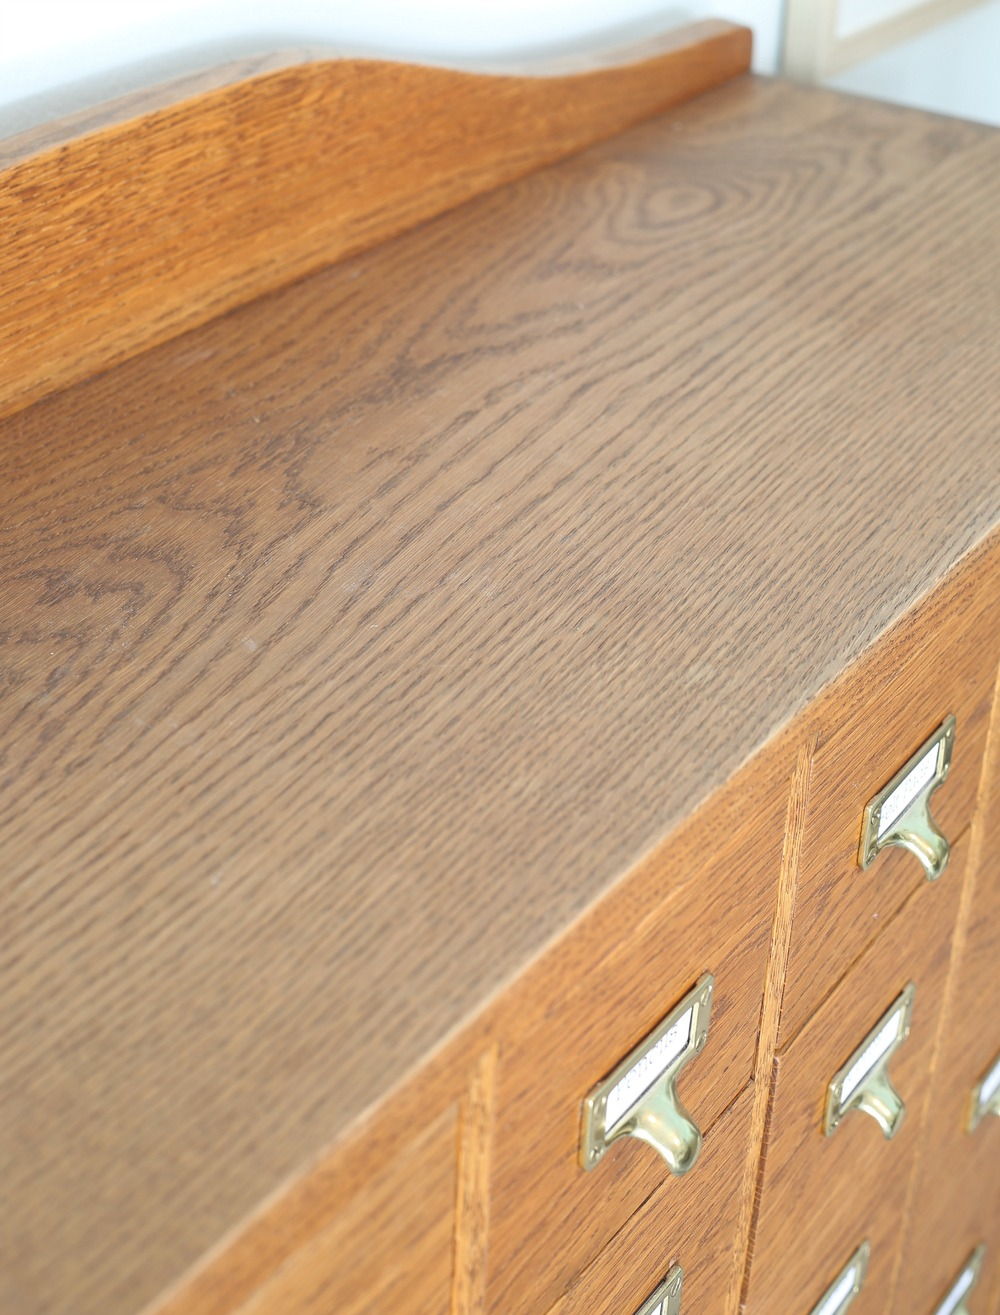 Tips for polishing and cleaning wood furniture.